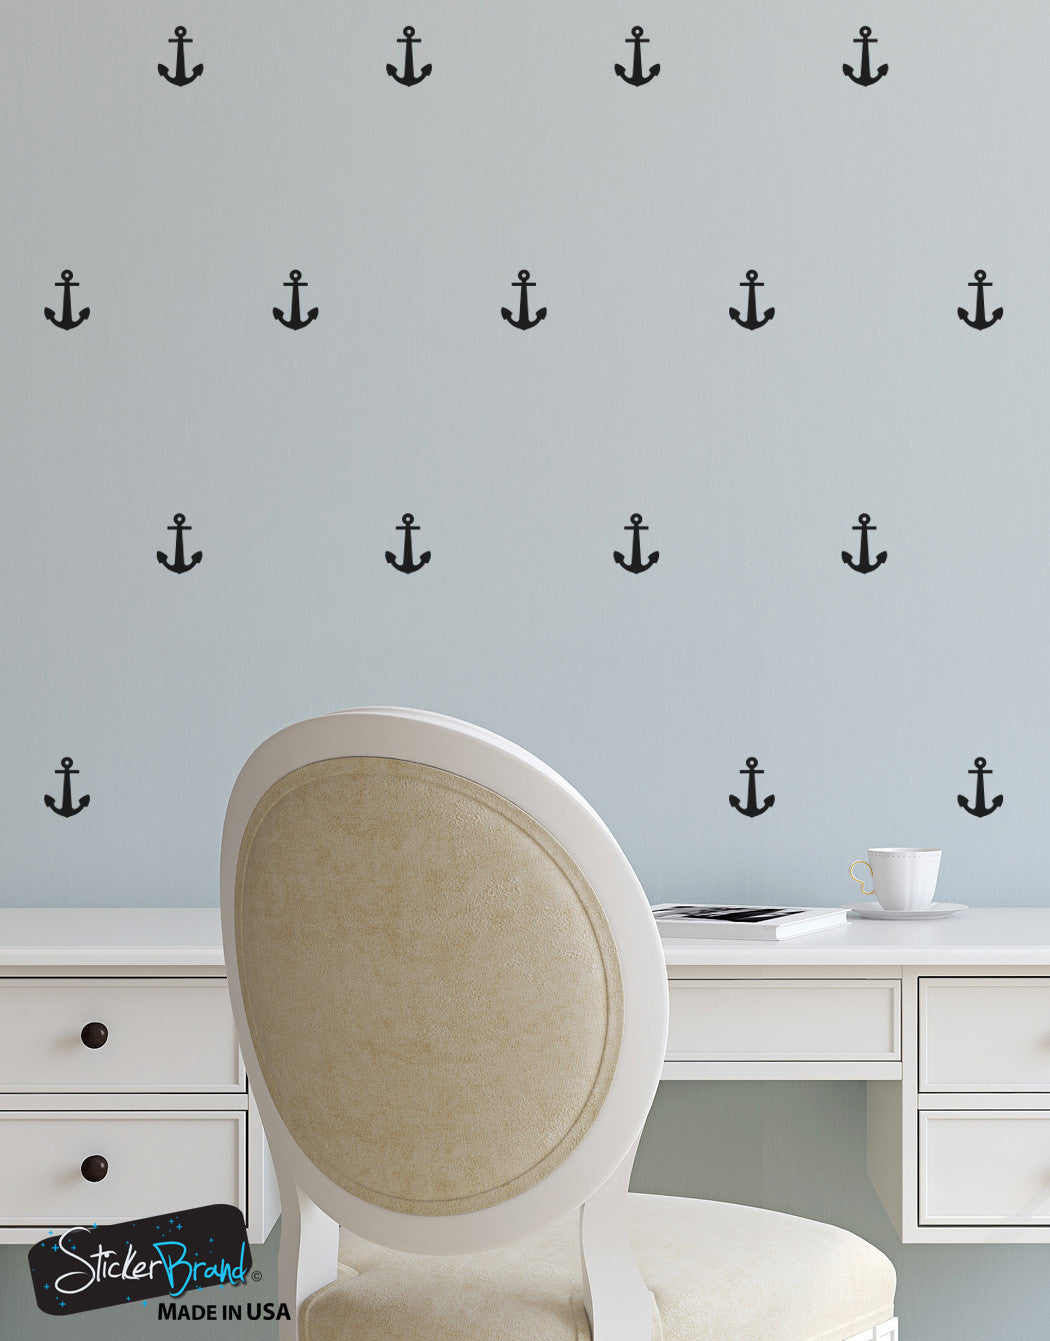 Anchor wall decals nautical wall stickers stickerbrand anchor patterns vinyl wall decal sticker 6075 amipublicfo Choice Image